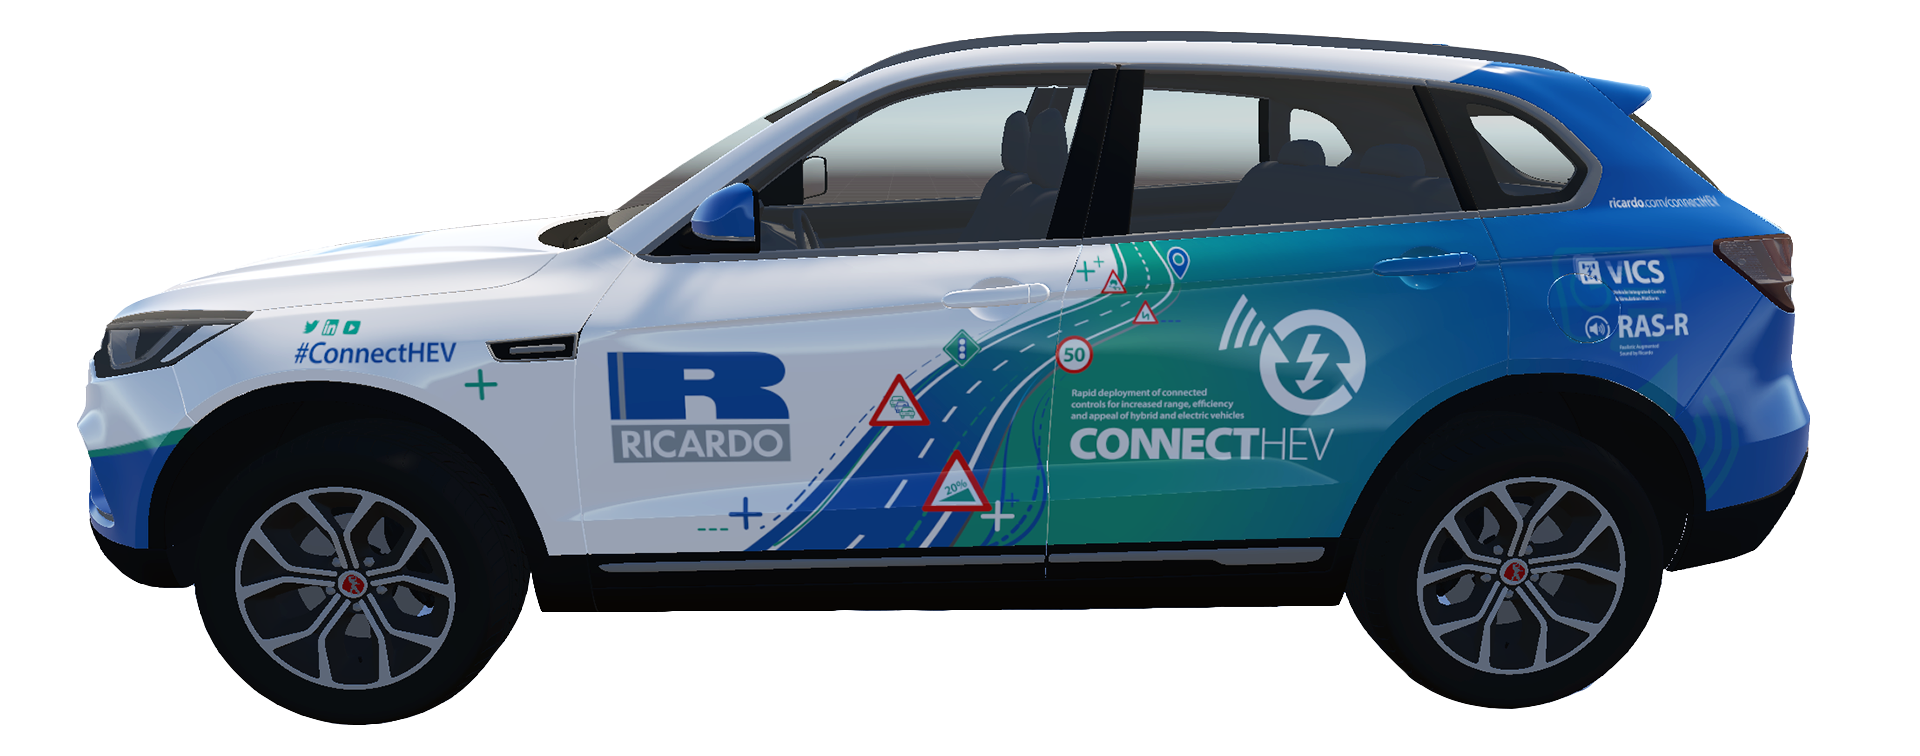 ConnectHEV vehicle